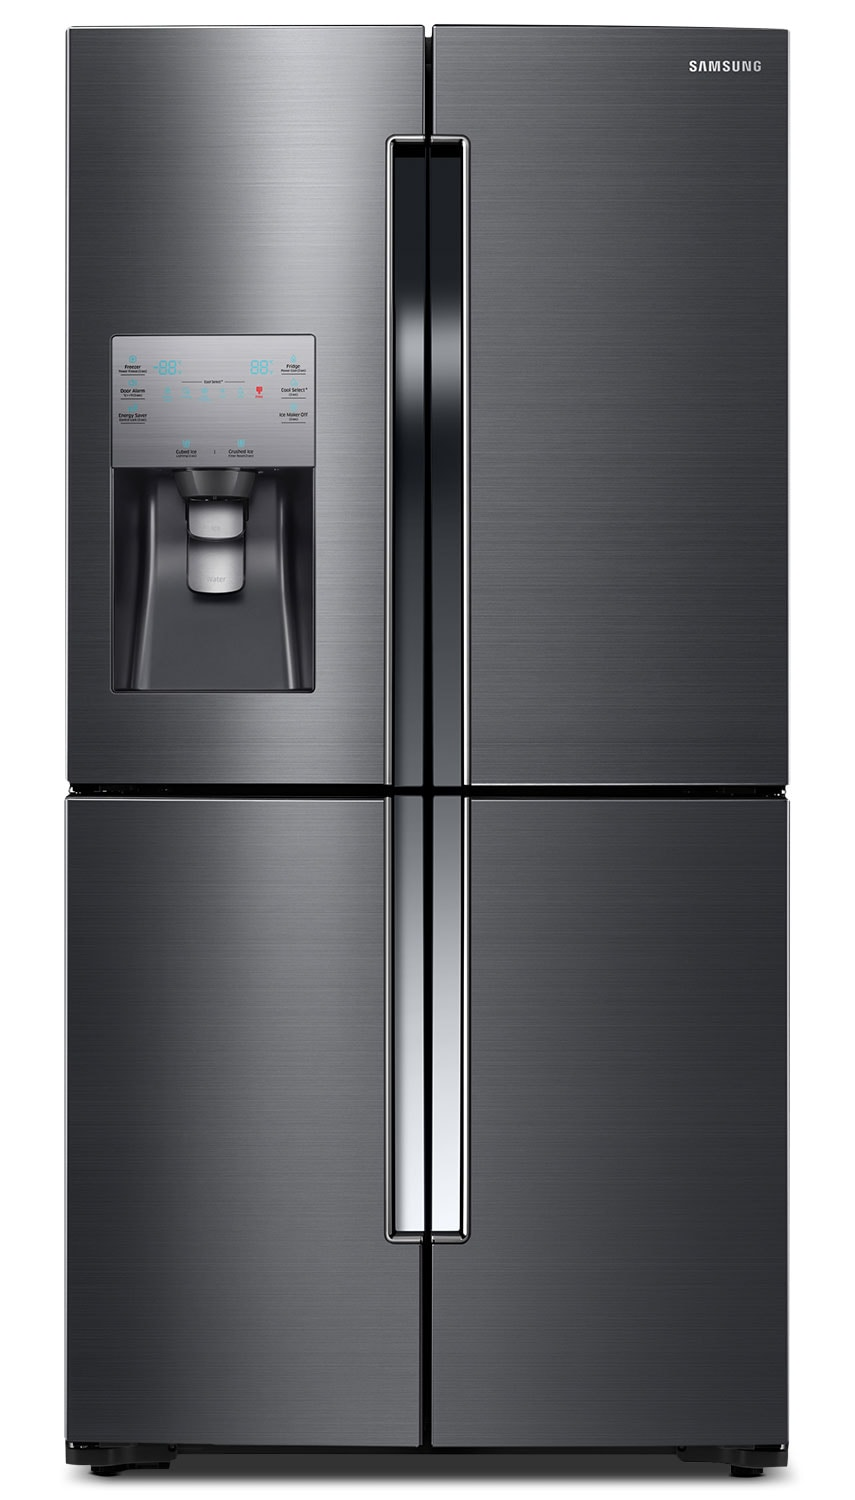 Refrigerators and Freezers - Samsung Black Stainless Steel French-Door Refrigerator (22.5 Cu. Ft.) - RF23J9011SG/AA